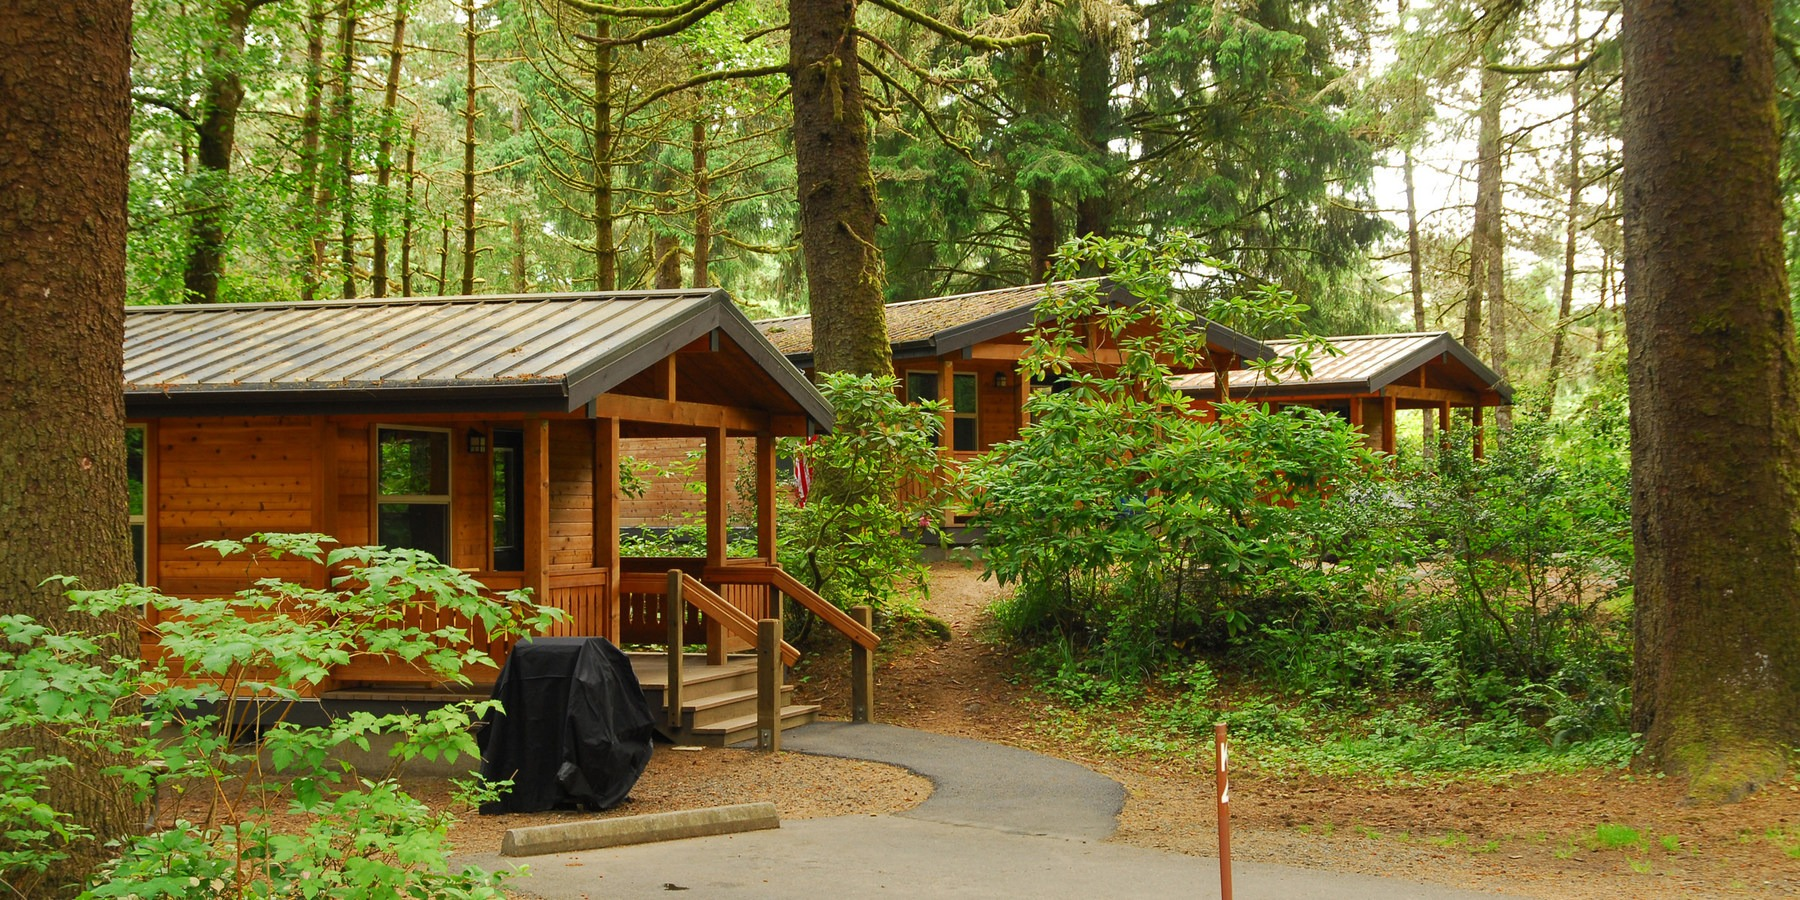 Very Impressive portraiture of Cabins at Fort Stevens State Park Campground.  14 Campgrounds Perfect  with #694114 color and 1600x800 pixels